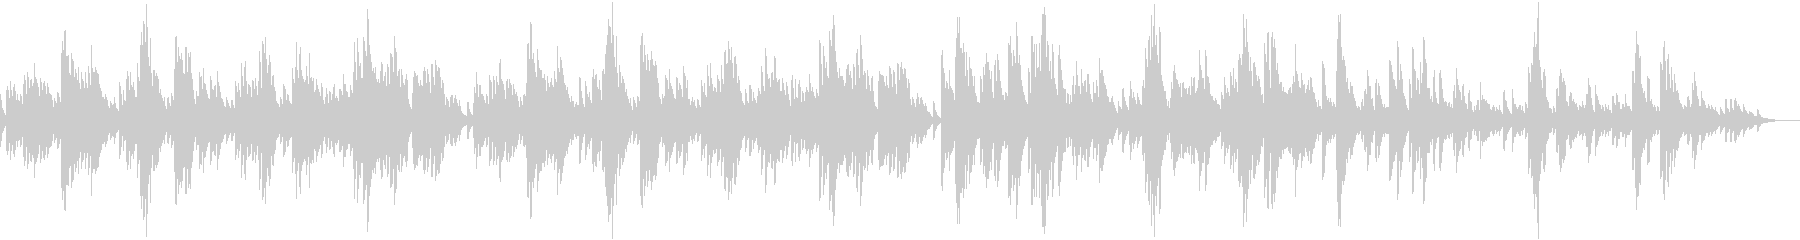 Beautiful slow piano song with beautiful melody's unreproduced waveform